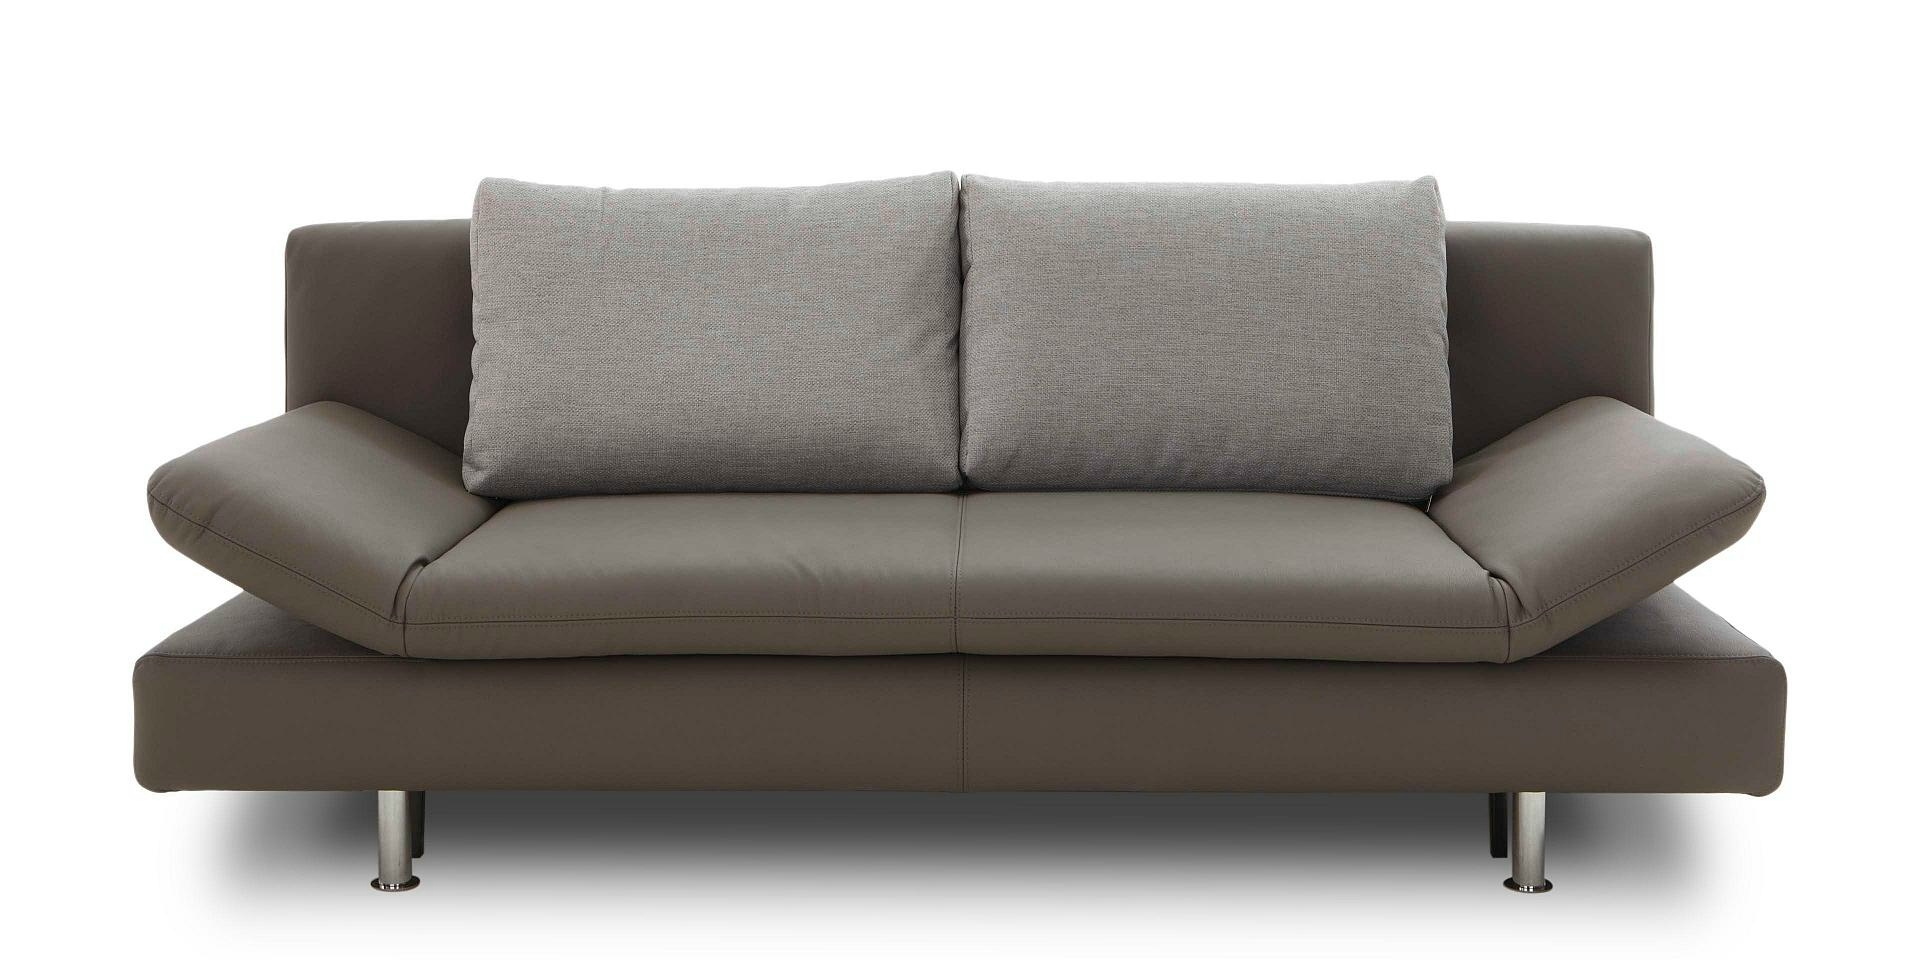 Sofas for Polster nagold